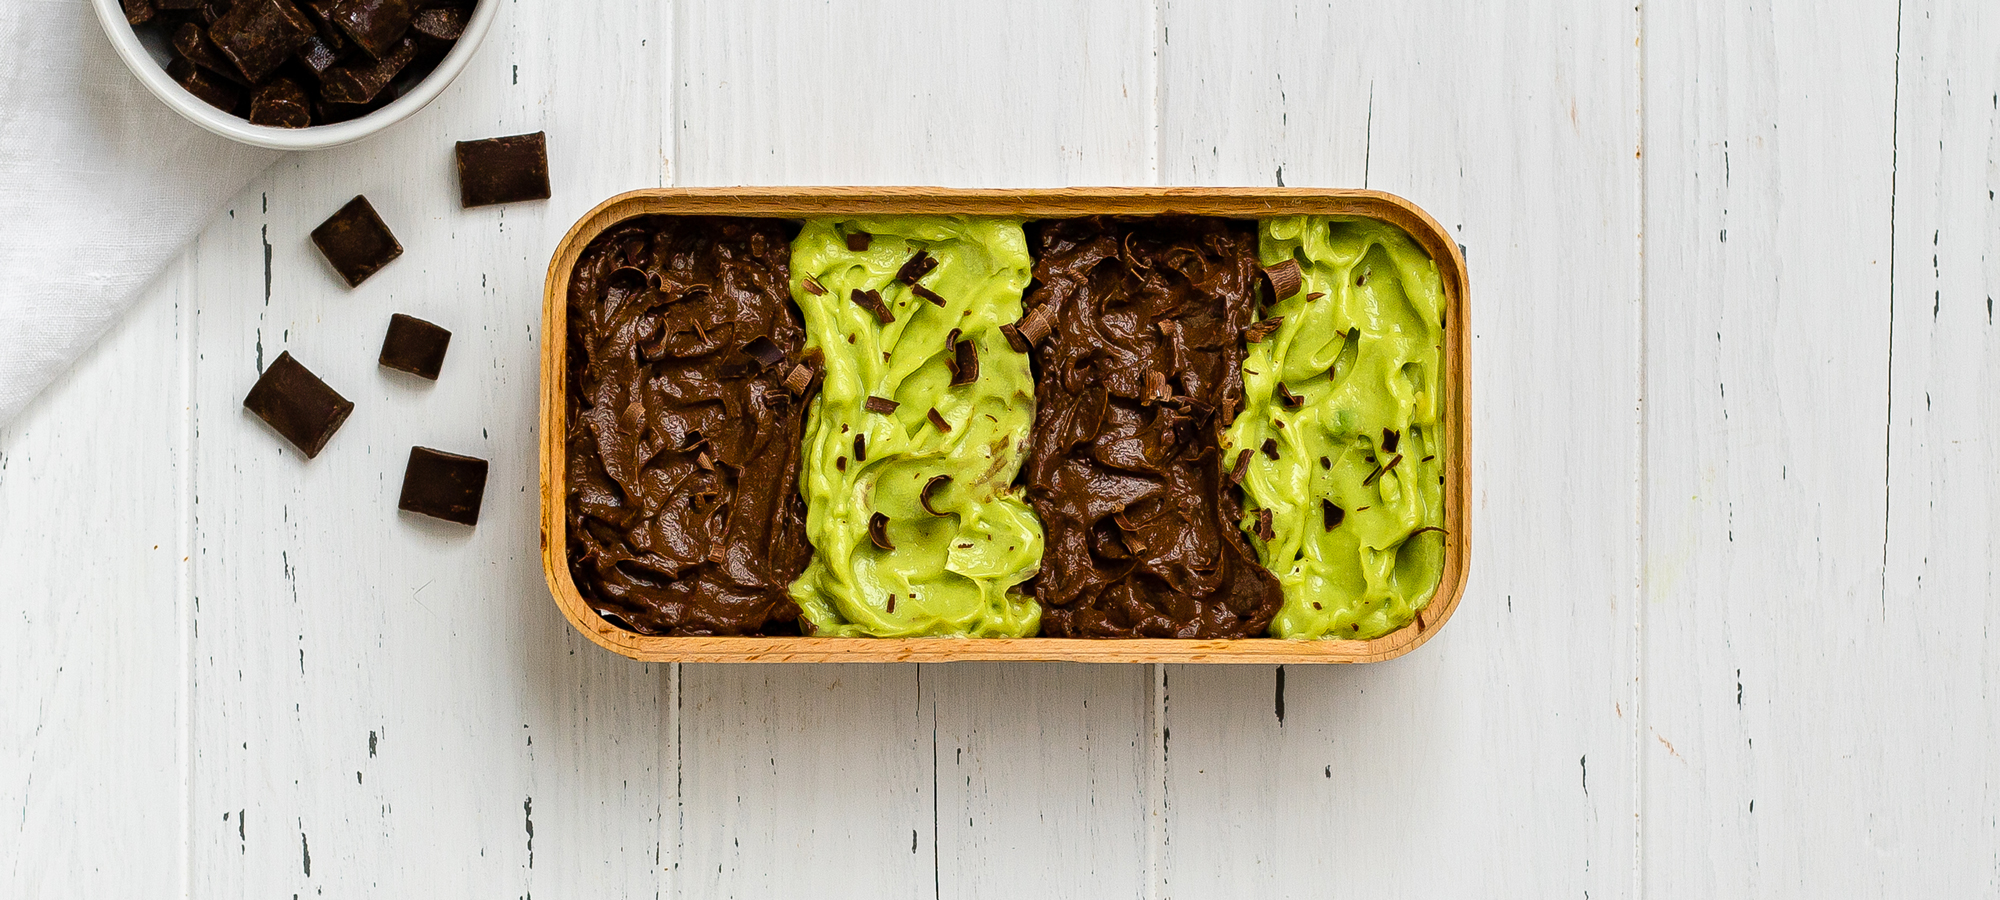 Keto mint chocolate mousse